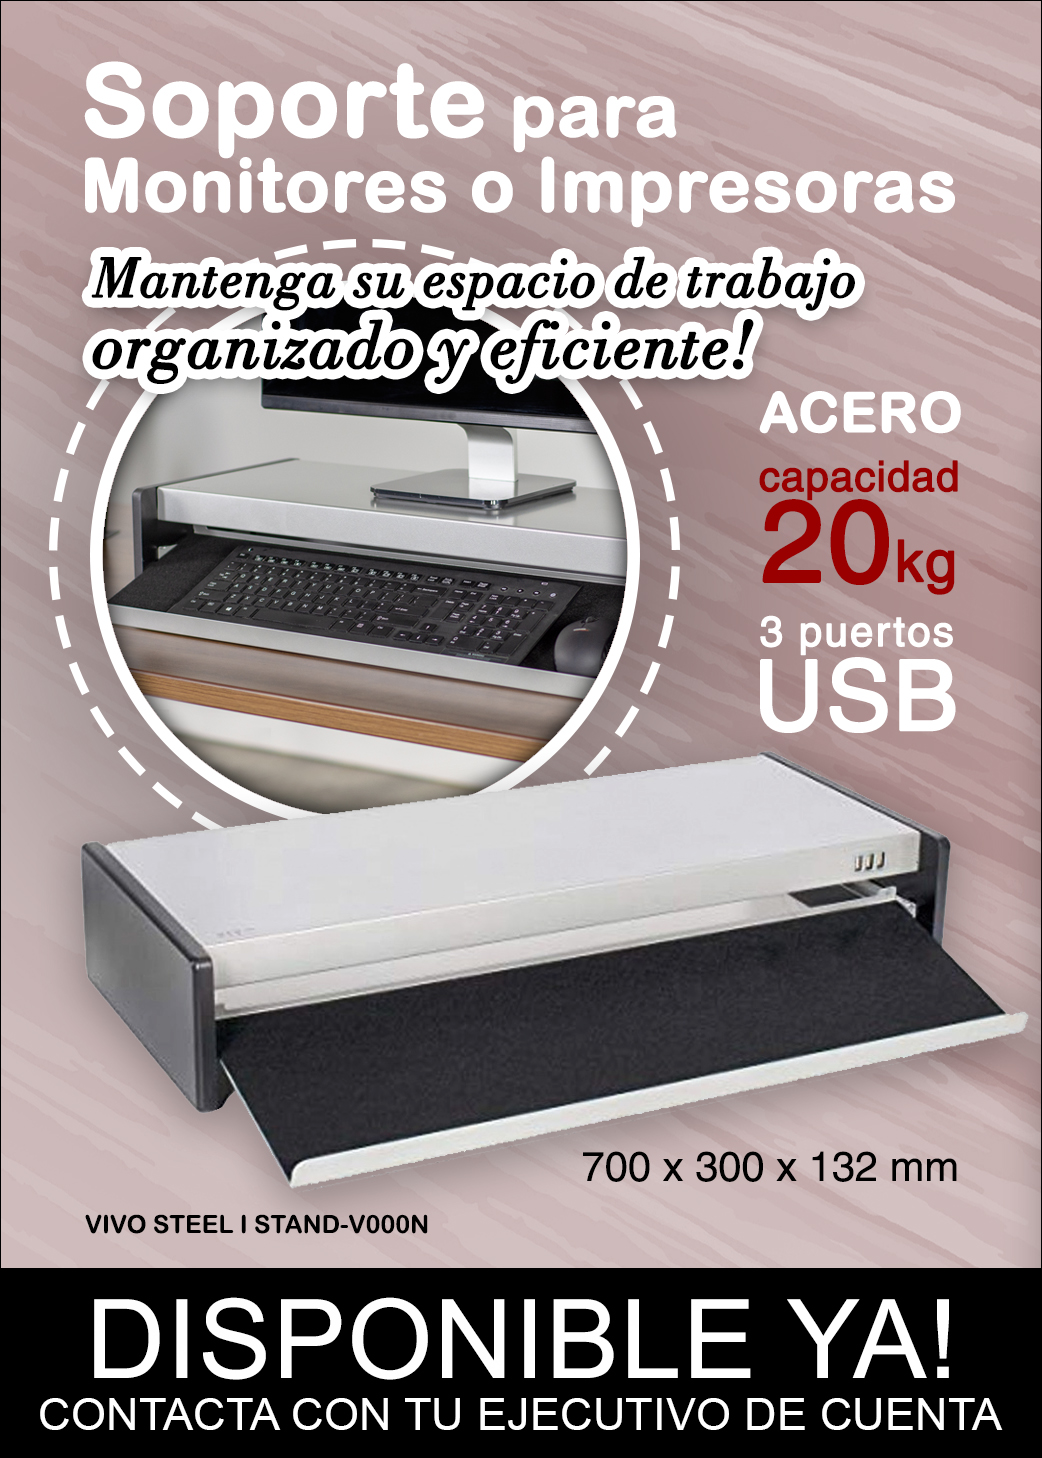 VIVO_STEEL-01-STAND-V000N - BANNER LATERAL